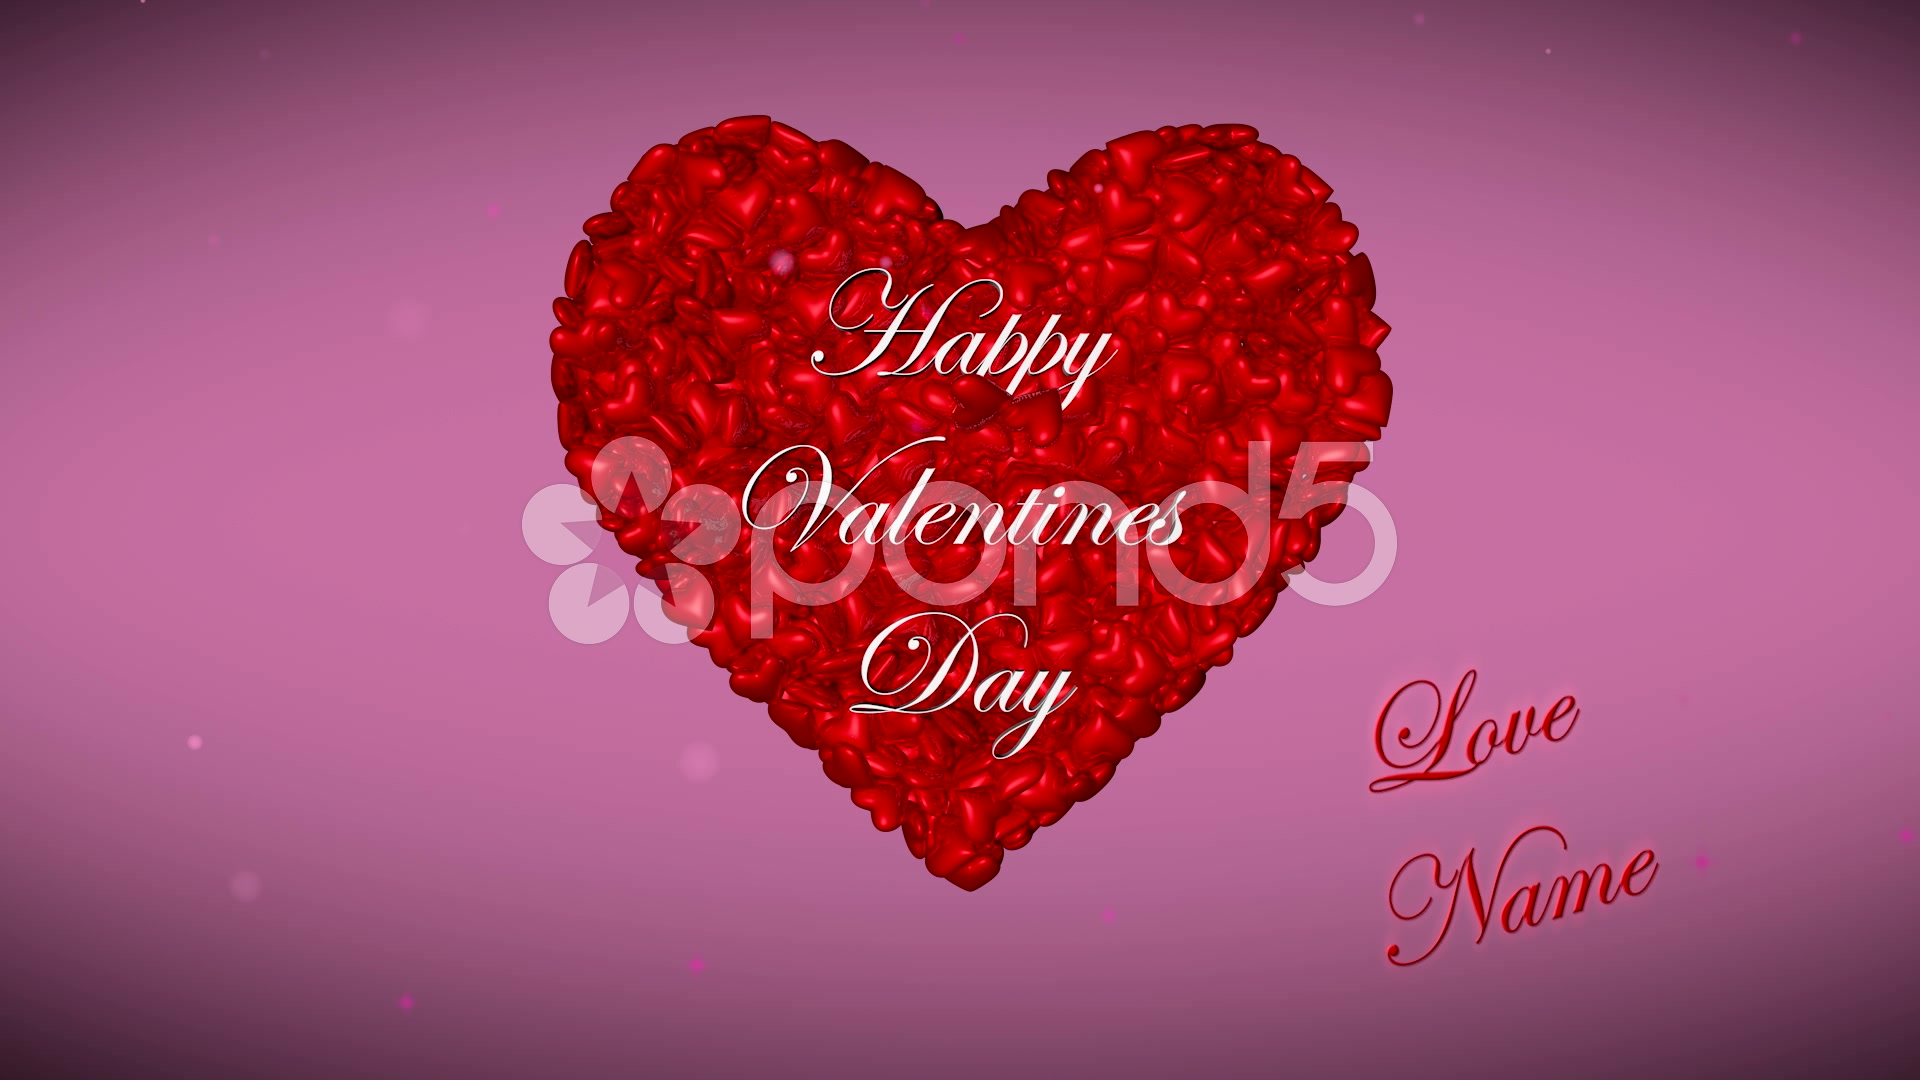 After Effects Project - Pond5 Happy valentines animation hearts 46746585